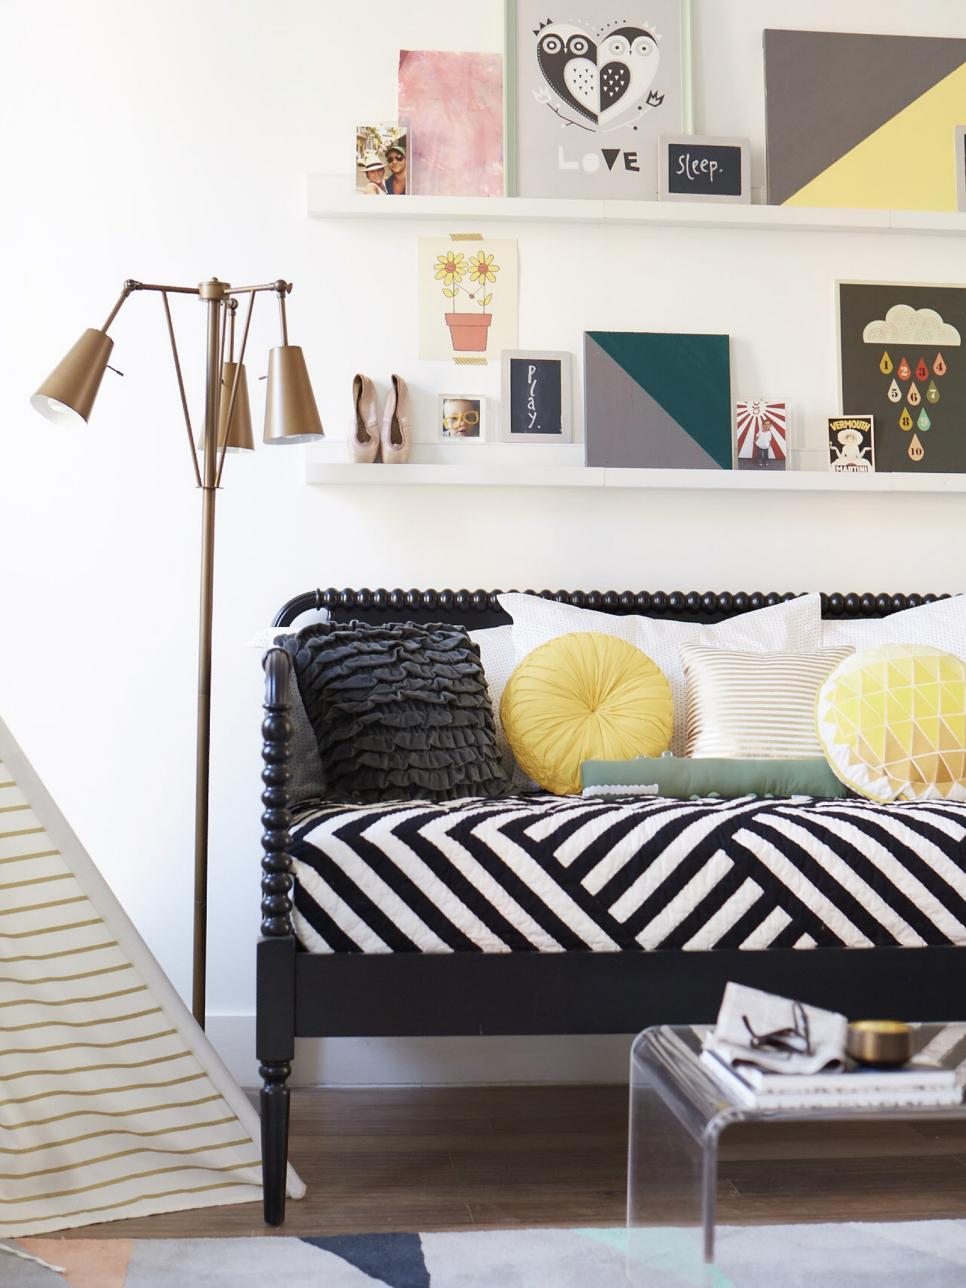 small space decorating don ts hgtv 13284 | ci land of nod small space solutions living room daybed v rend hgtvcom 966 1288